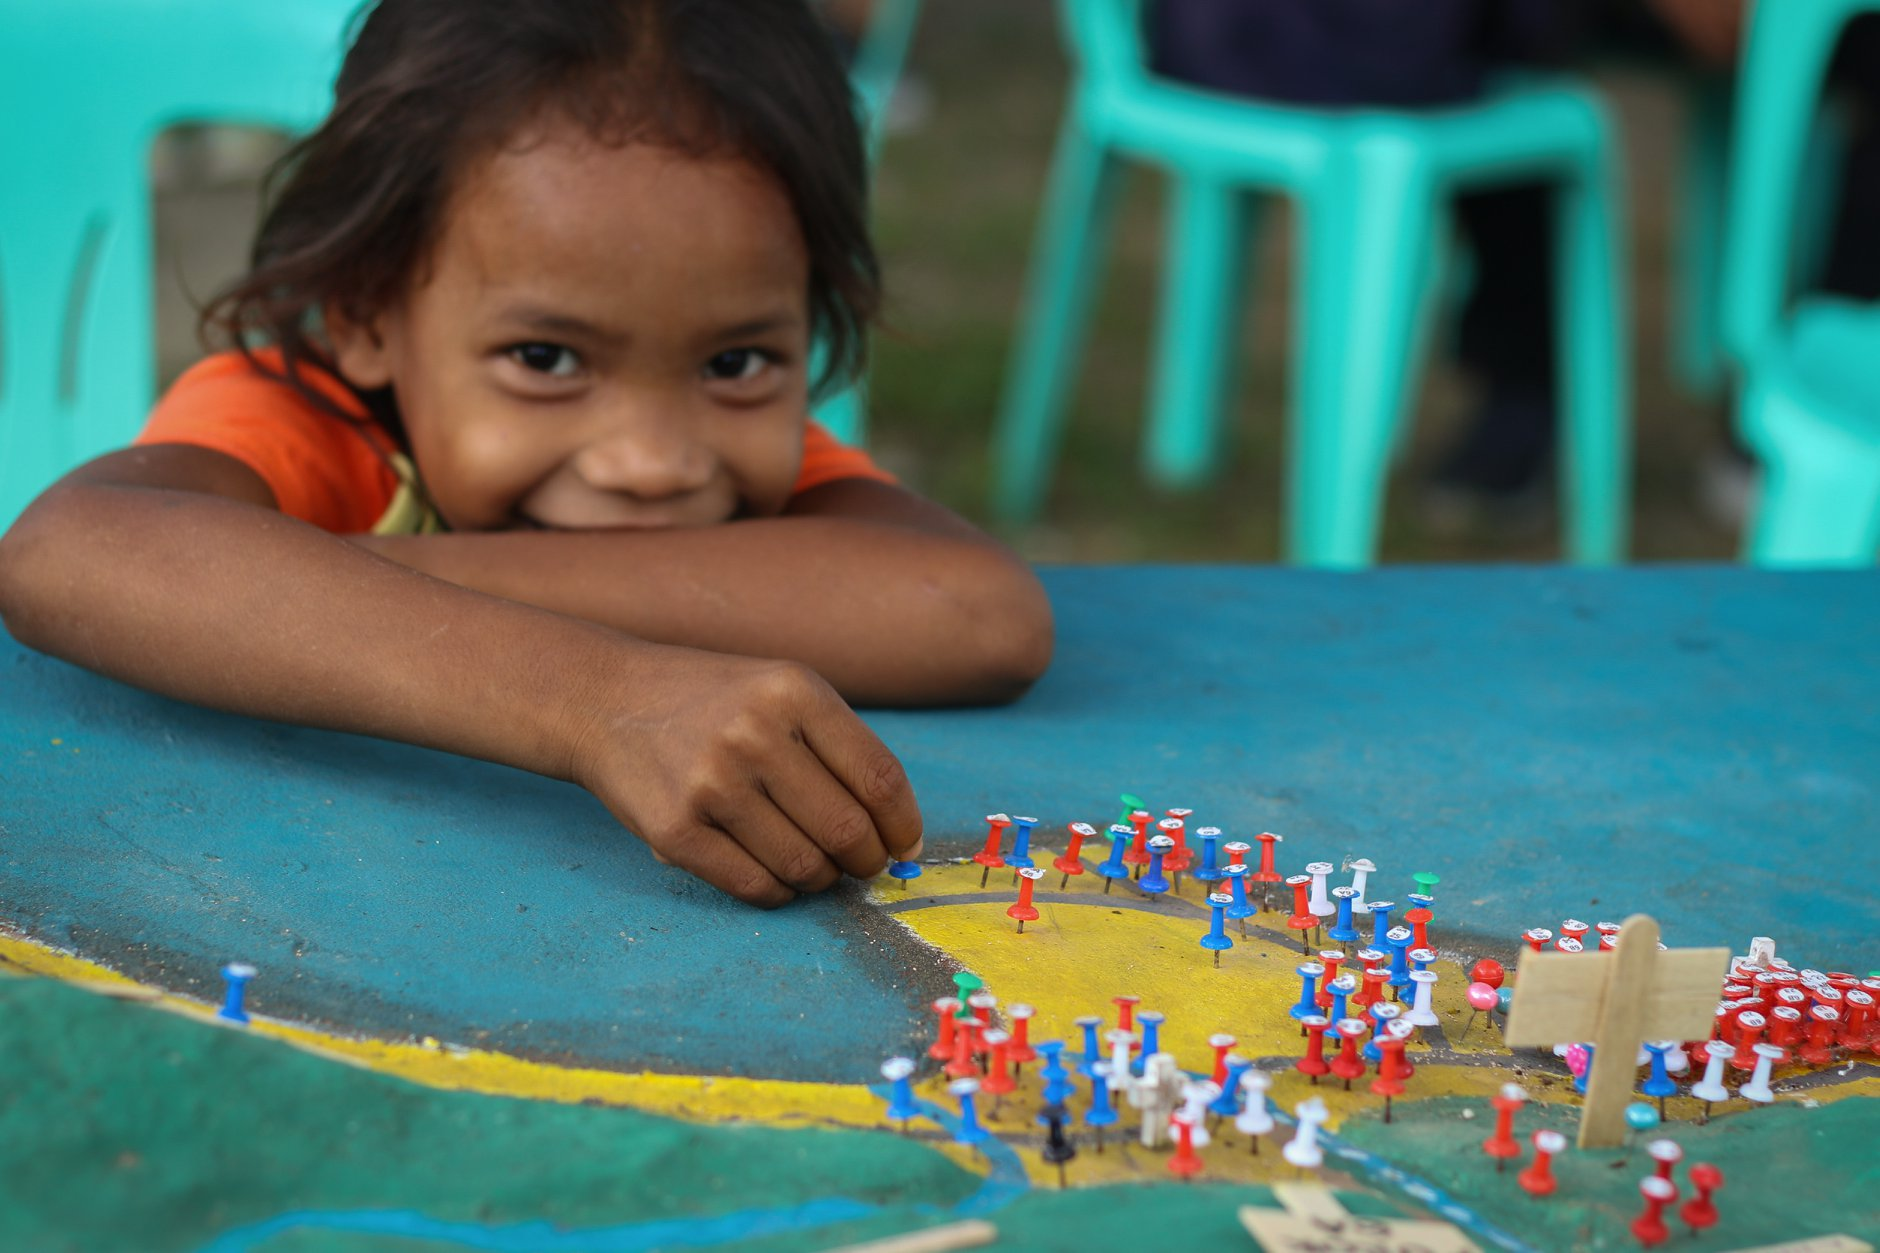 A girl smiles while looking at a map on a table